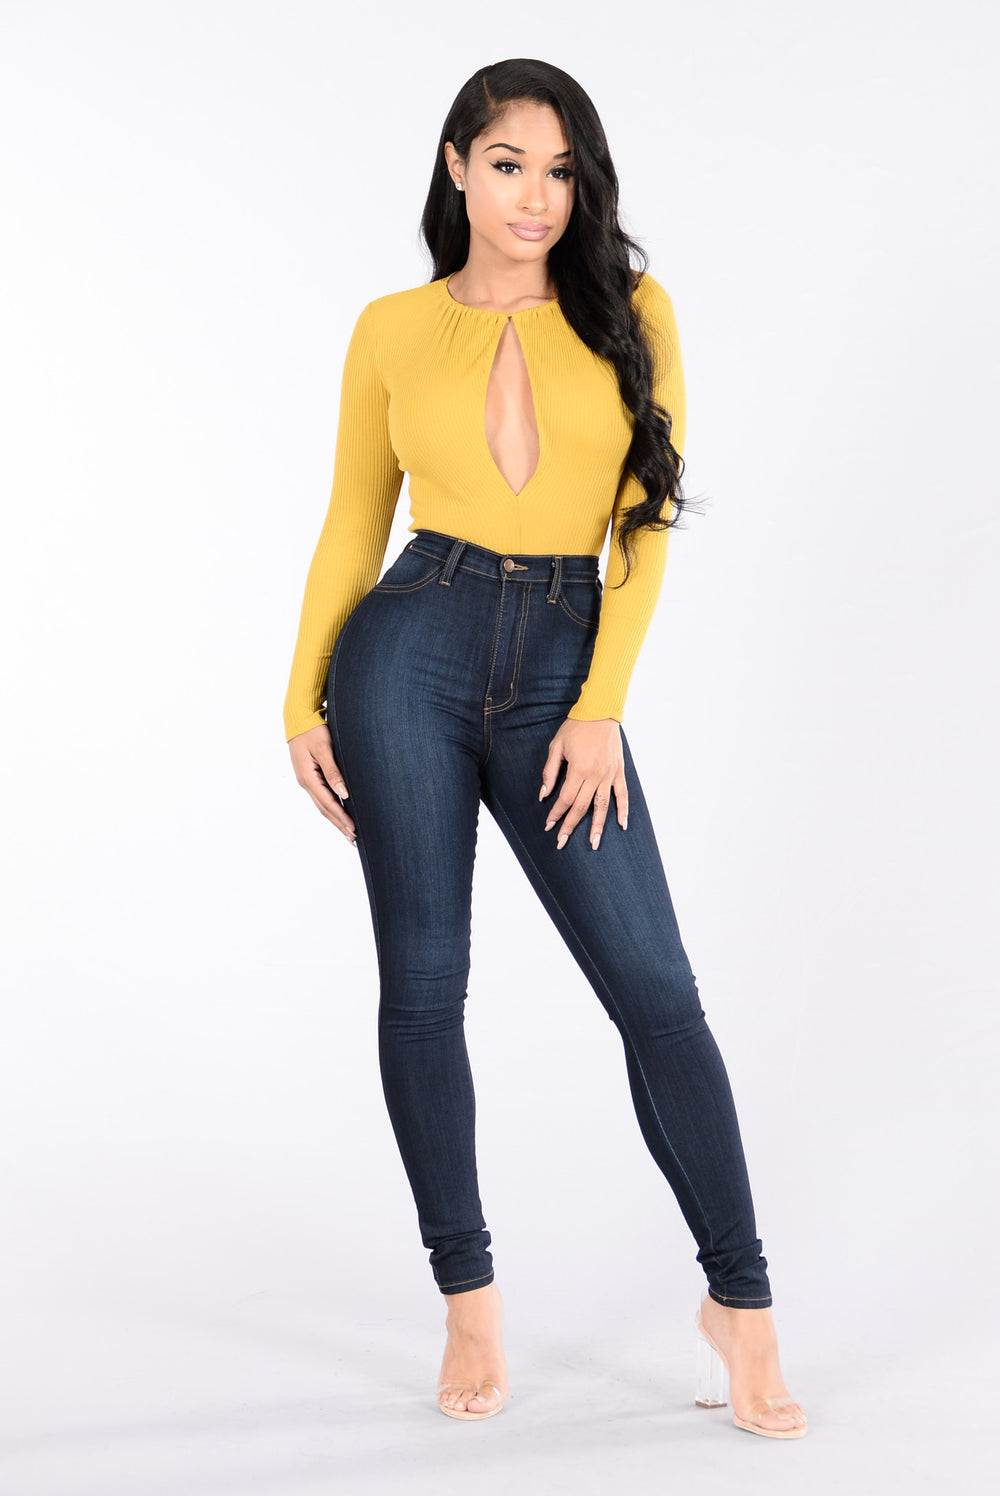 All About Me Bodysuit - Mustard